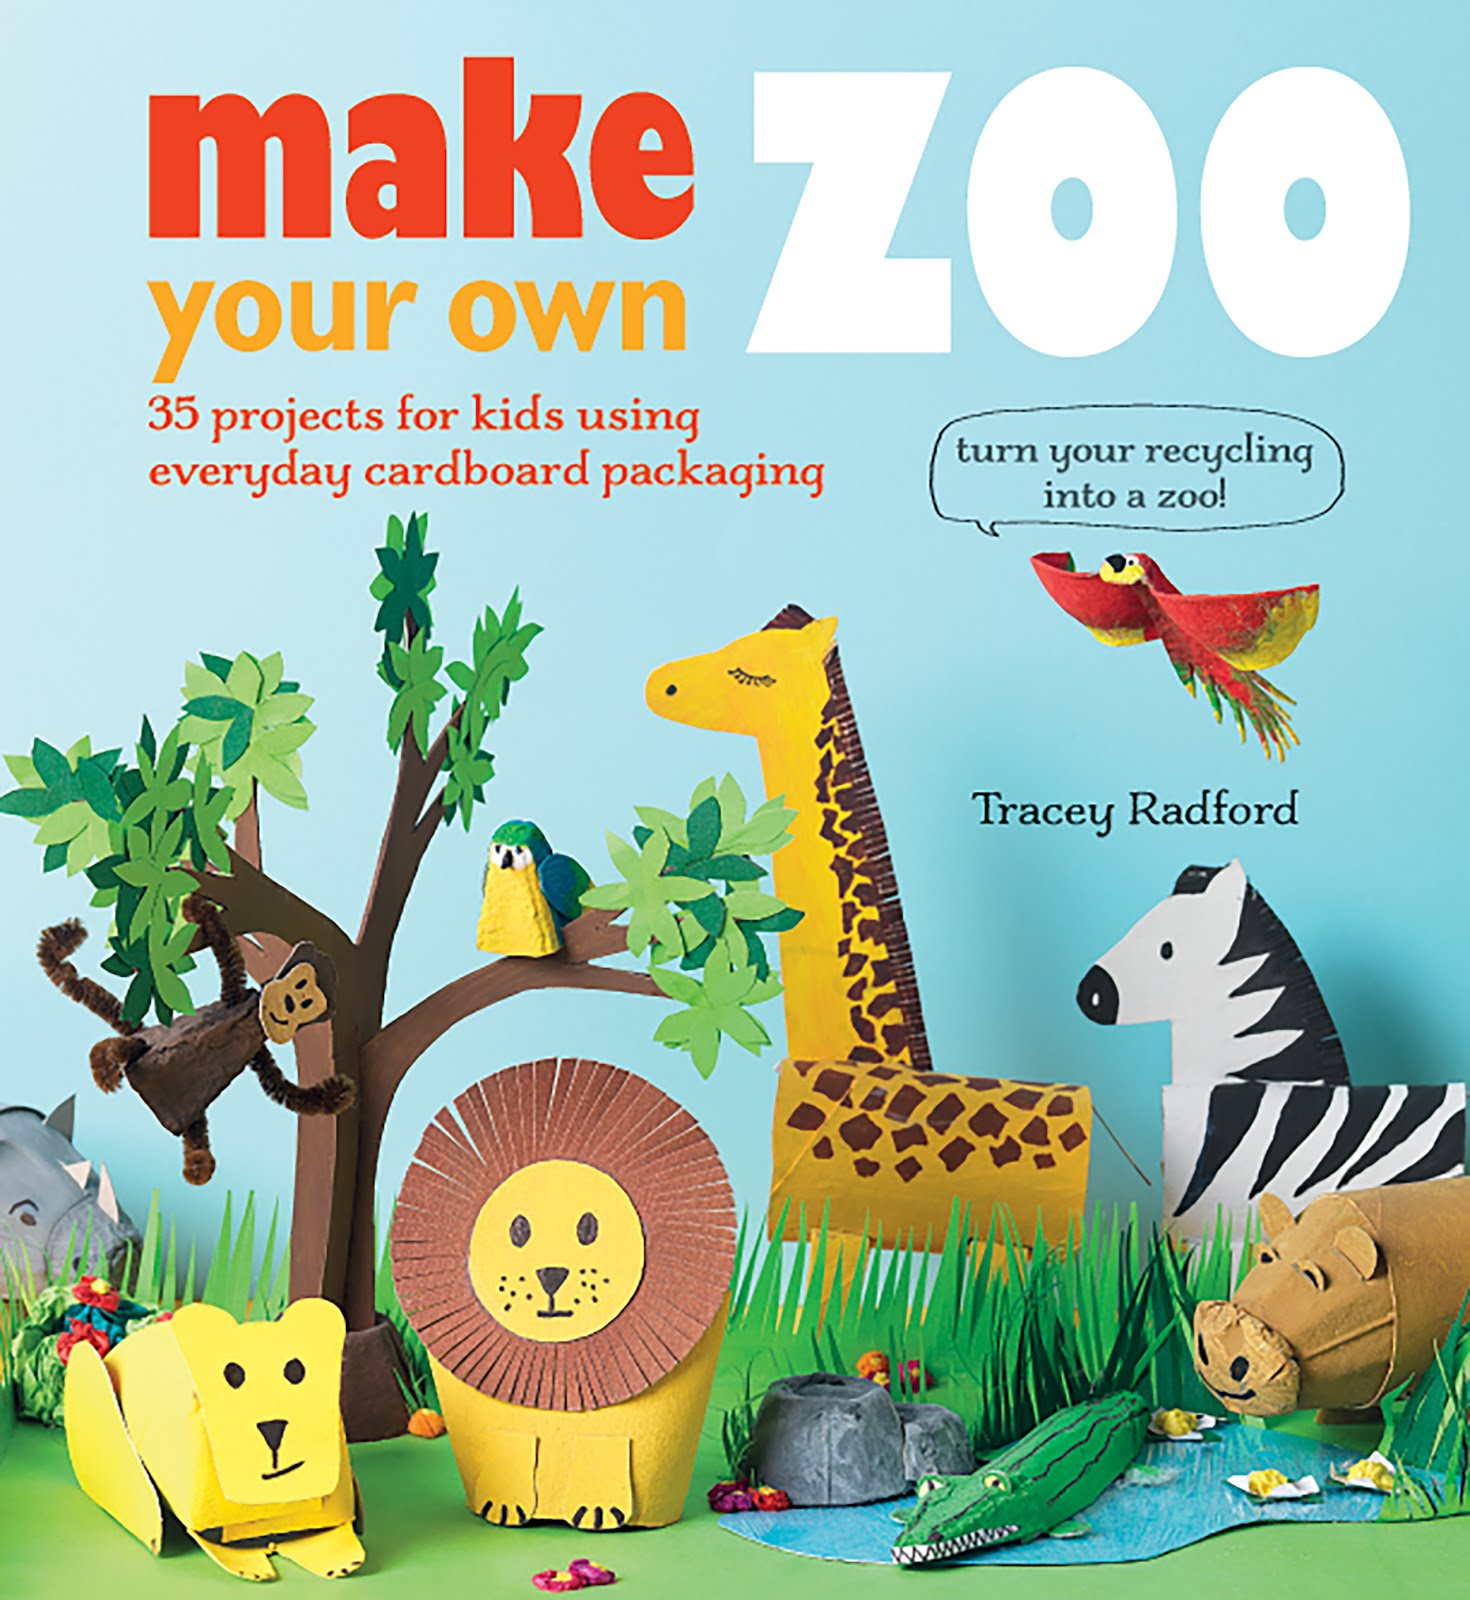 Turn your recycling into a zoo!